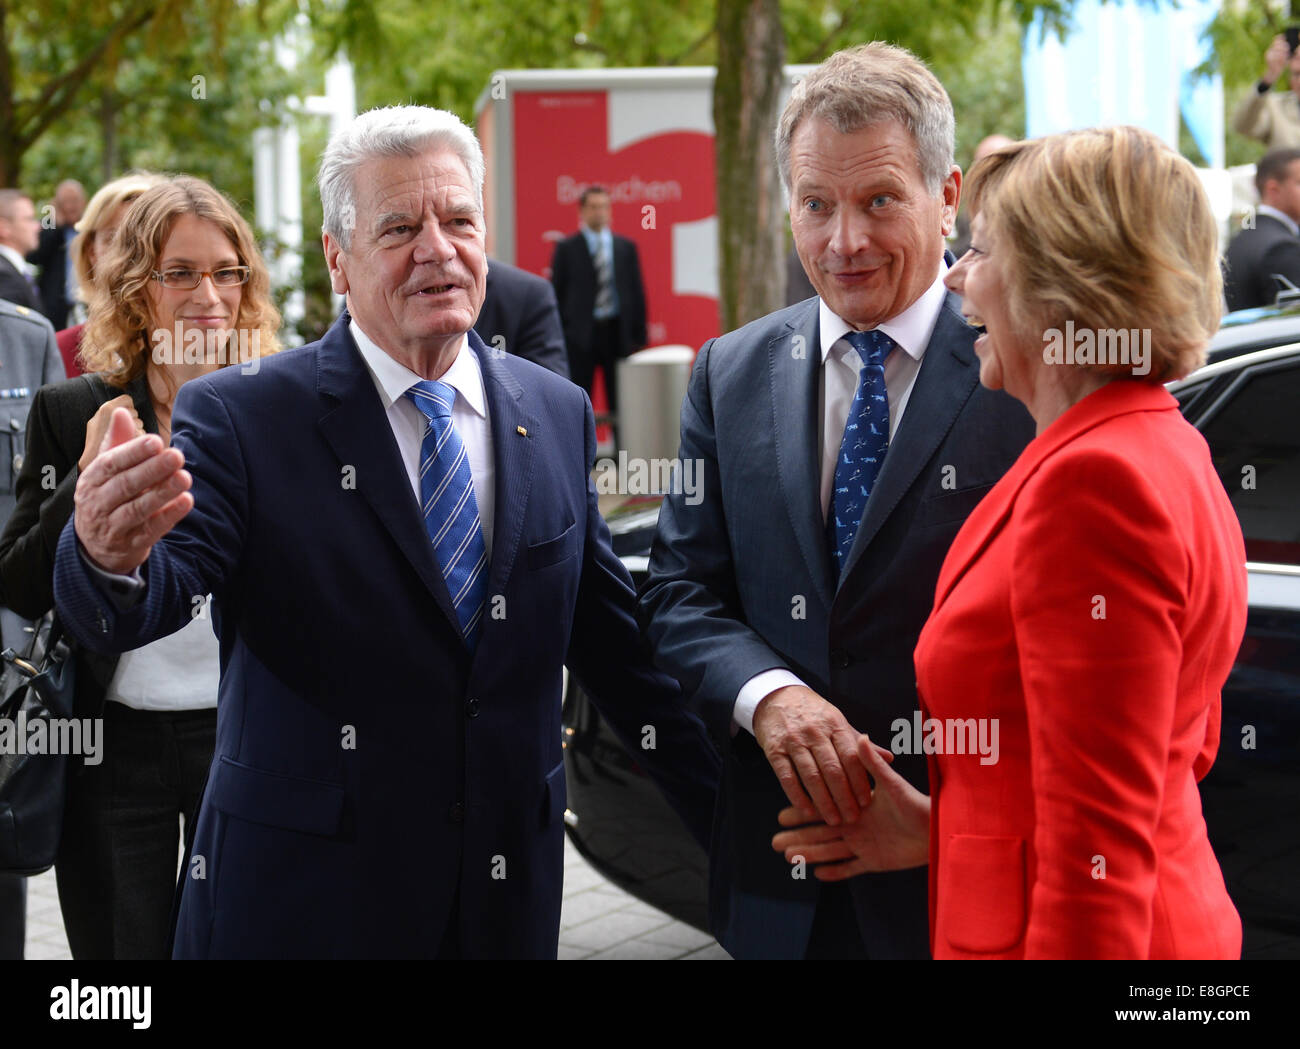 German President Joachim Gauck (L) and his partner Daniela Schadt greet the Finnish President Sauli Niinisto and - Stock Image